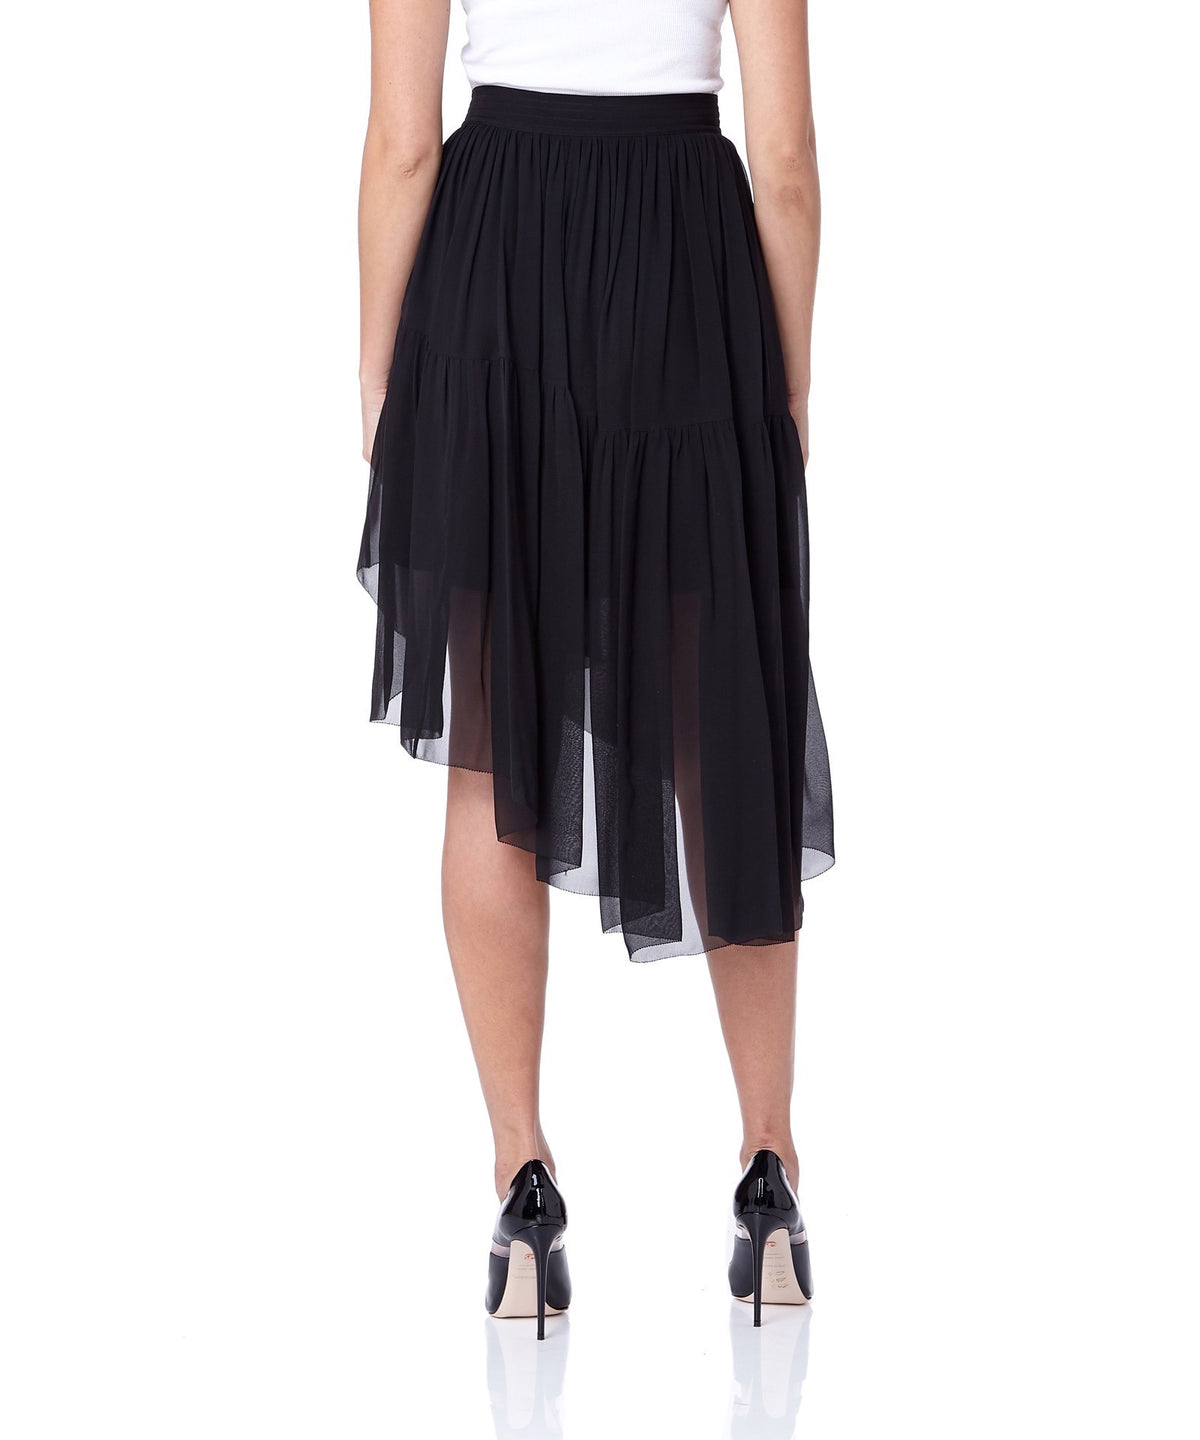 Mugler Asymmetric Hem Women Black Skirt